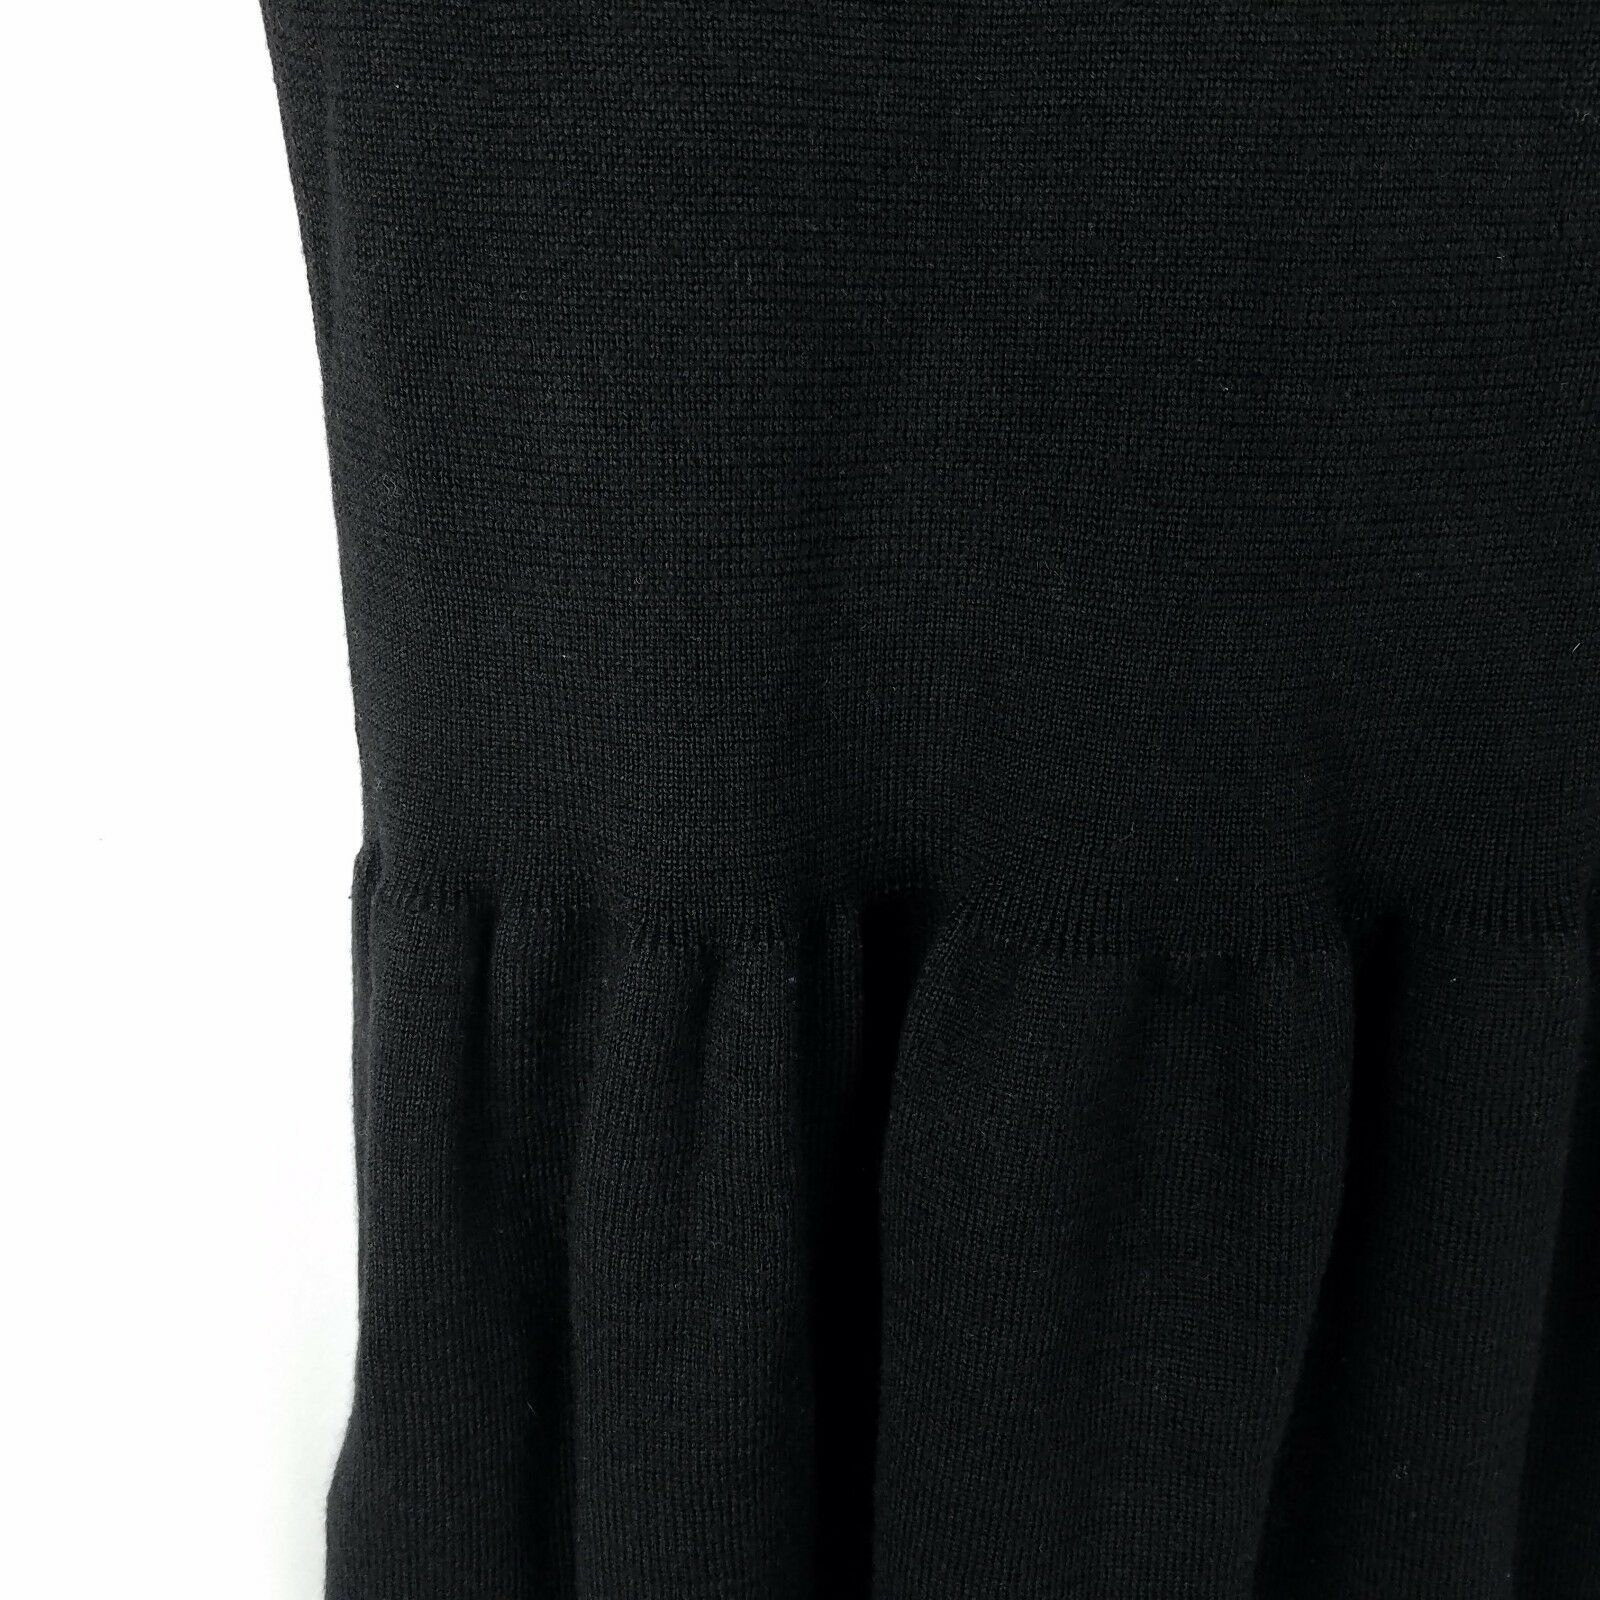 Anne Klein Black Sweater Dress Womens Size S Small 3/4 Sleeve Stretch Short image 8